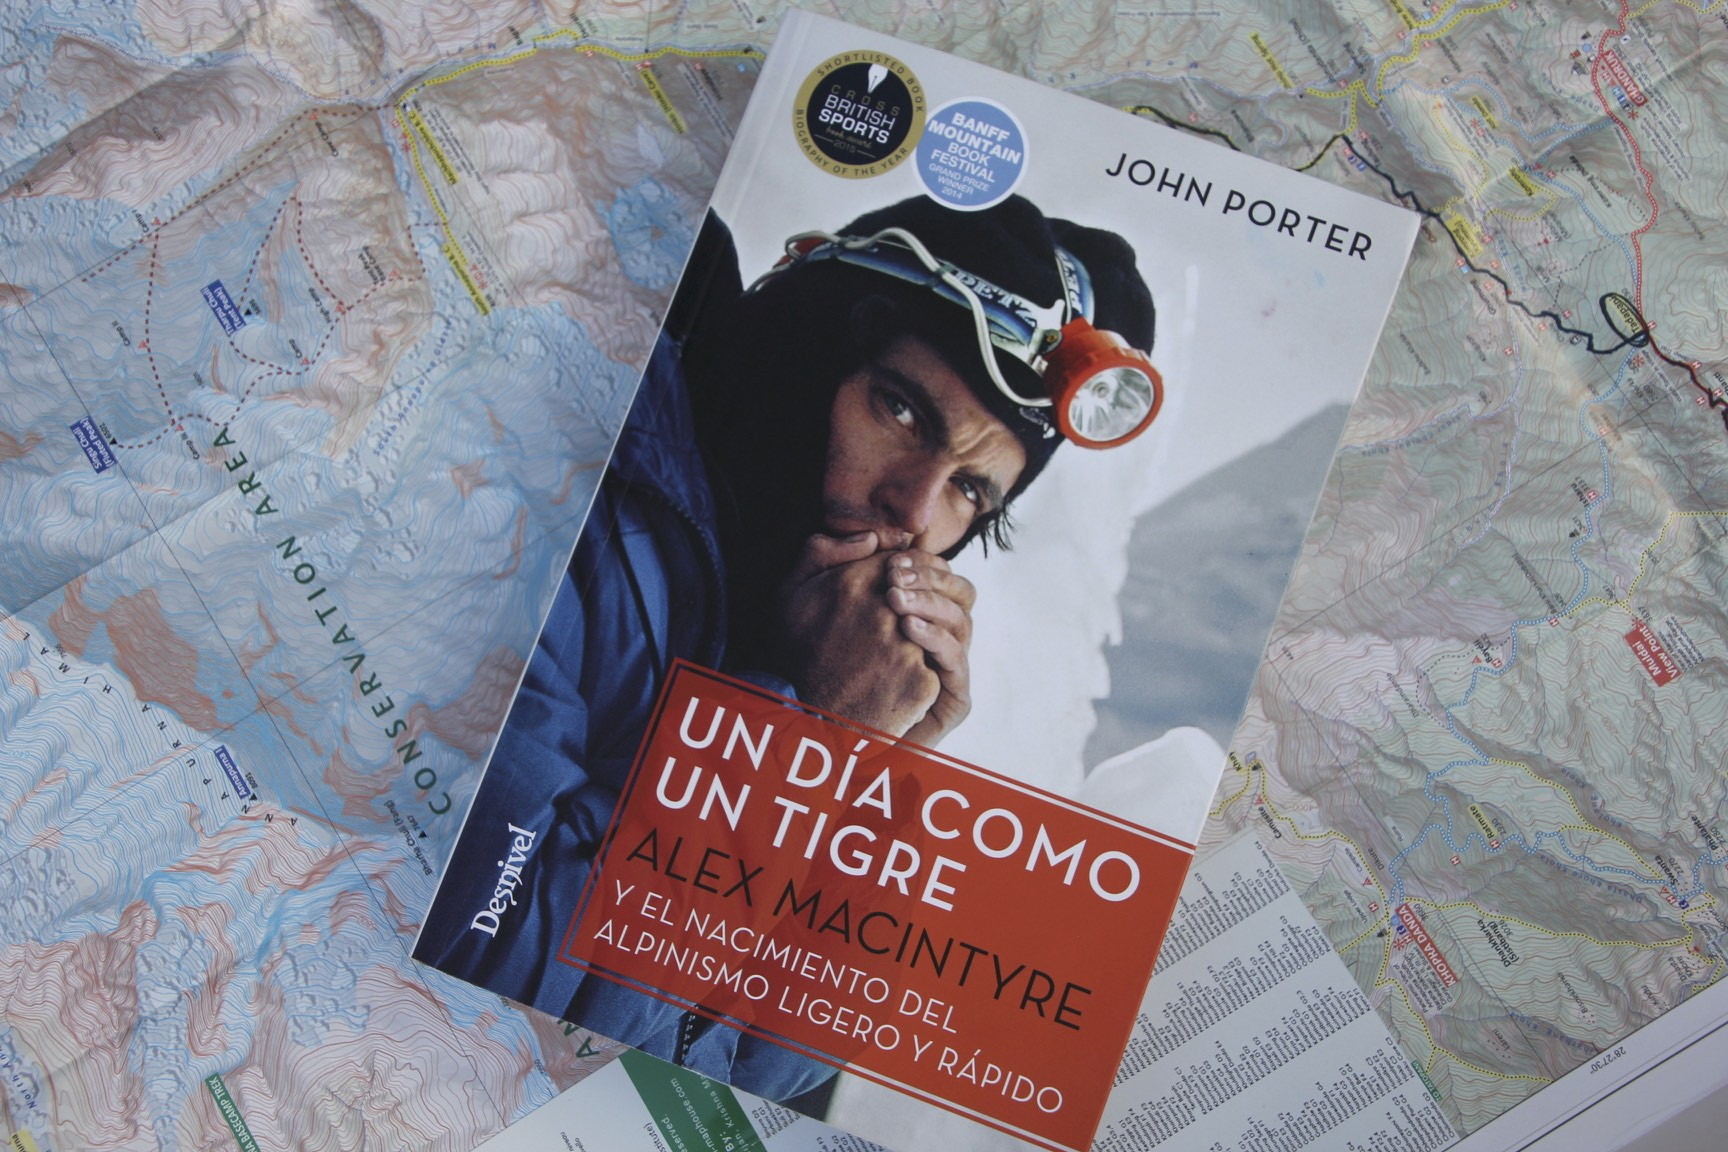 A book about Alex Macintyre who died on Annapurna I (great book by the way)